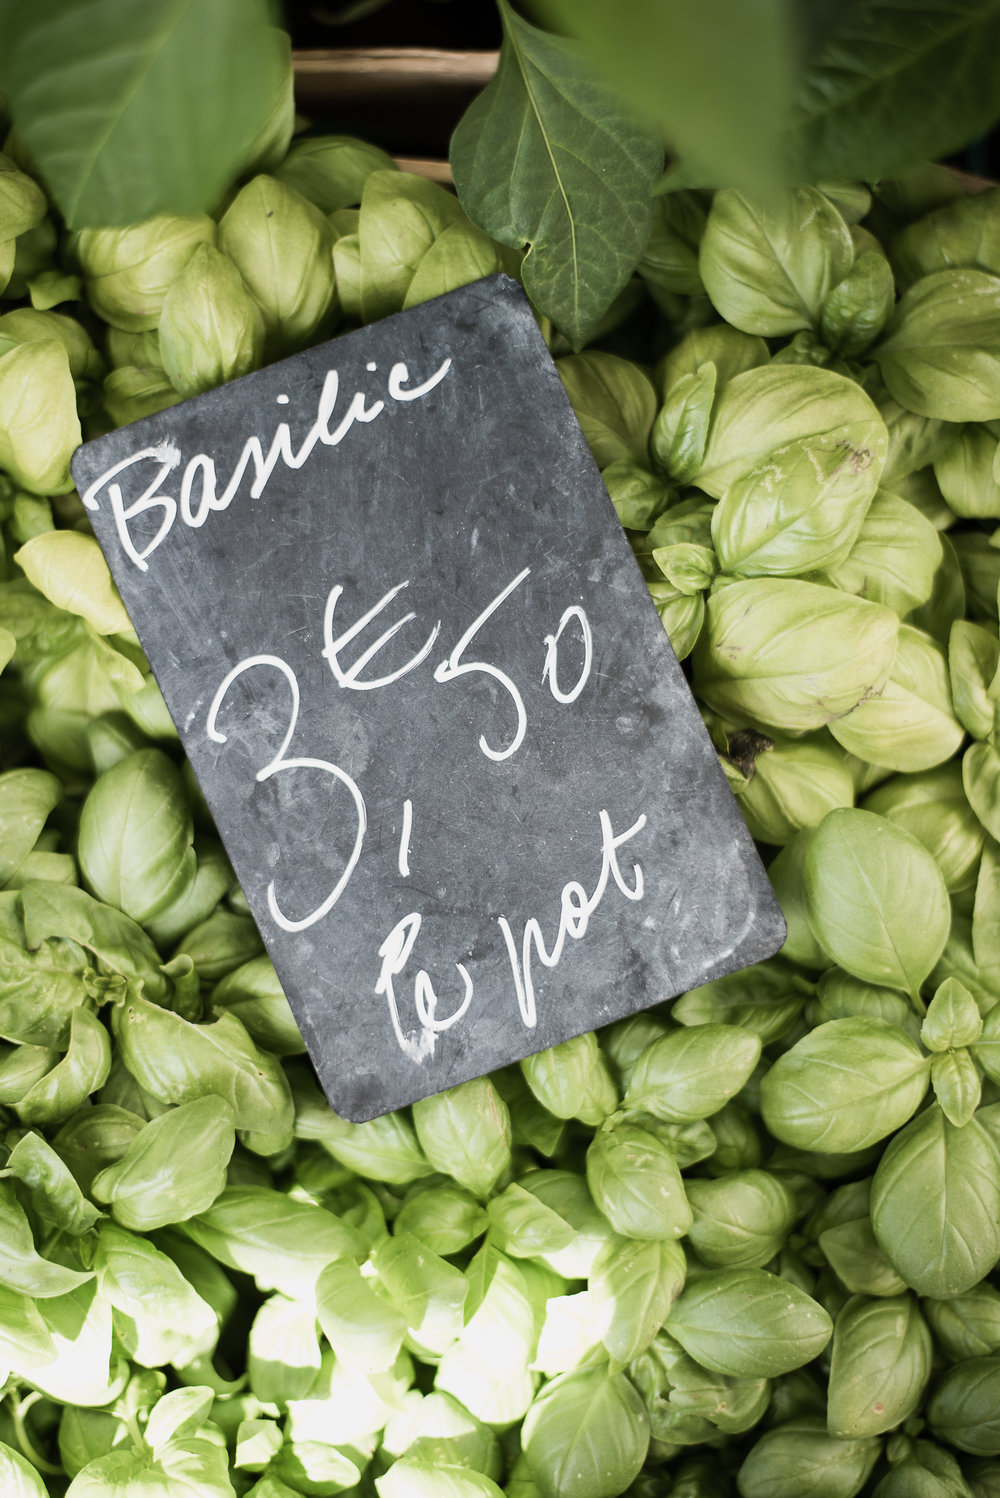 Farmer's Market in Perigeux, France at The Academy | boxwoodavenue.com